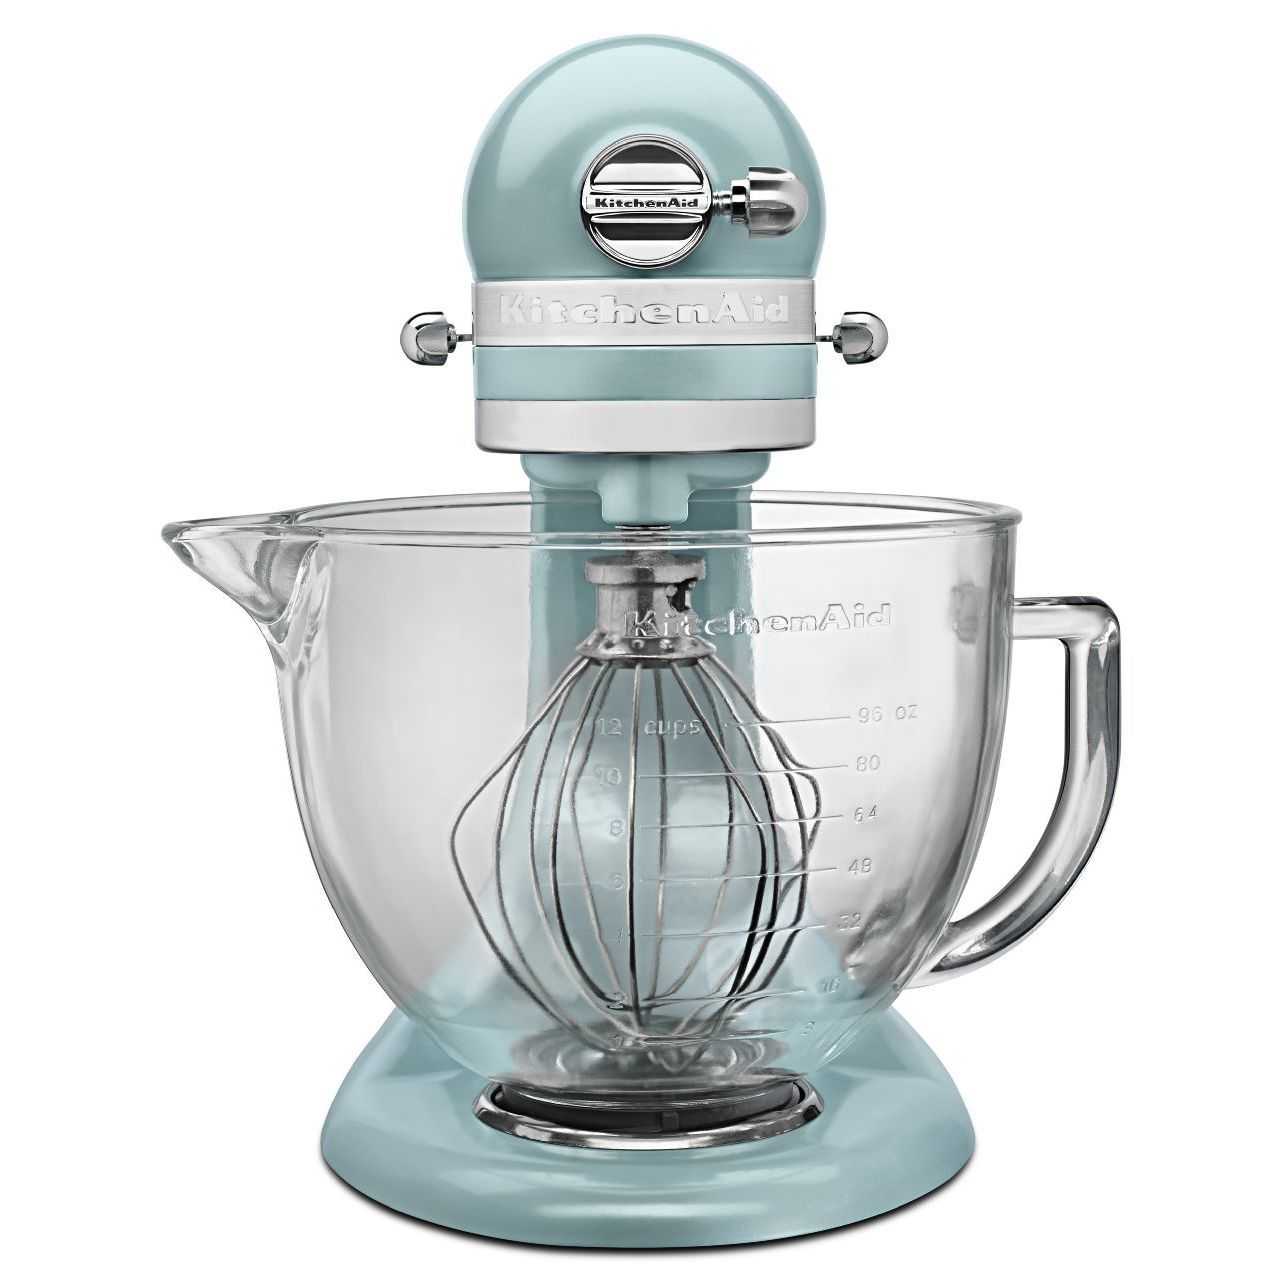 Shop KitchenAid KSM155GBAZ Azure Blue 5-quart Artisan Tilt-head ...